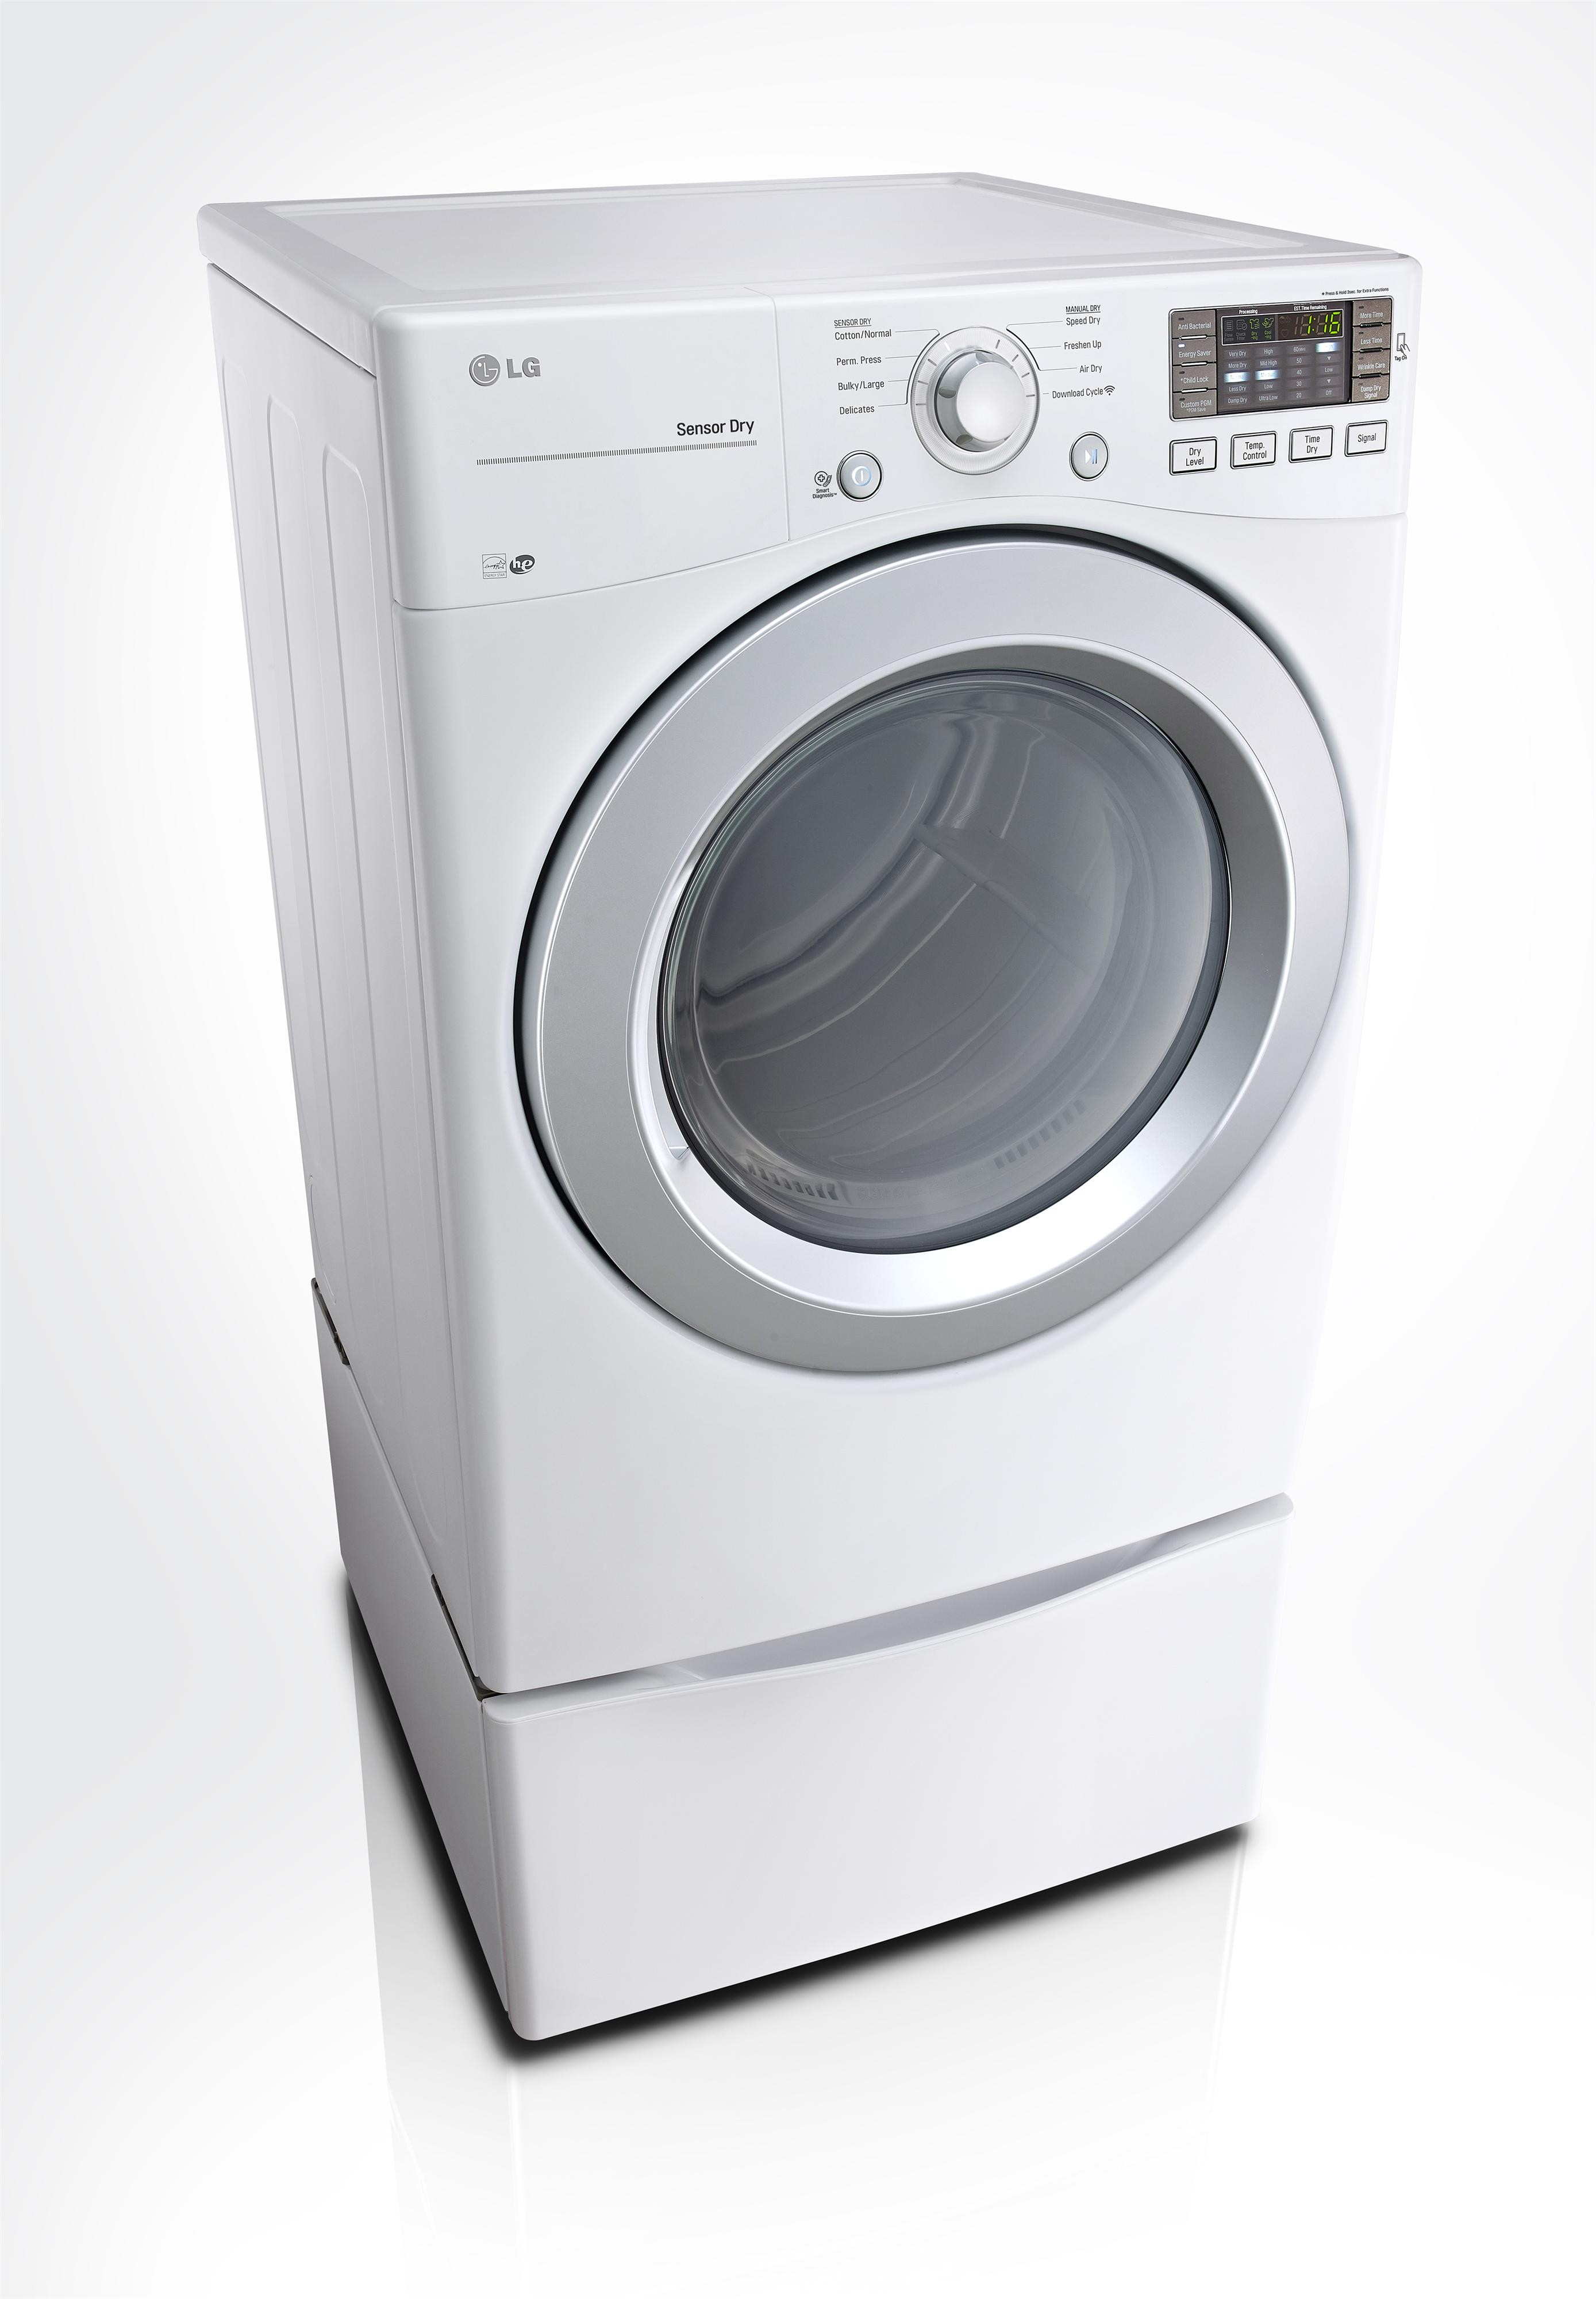 LG Appliances Dryers 7.4 cu. ft. Front Load Electric Dryer - Item Number: DLE3170W